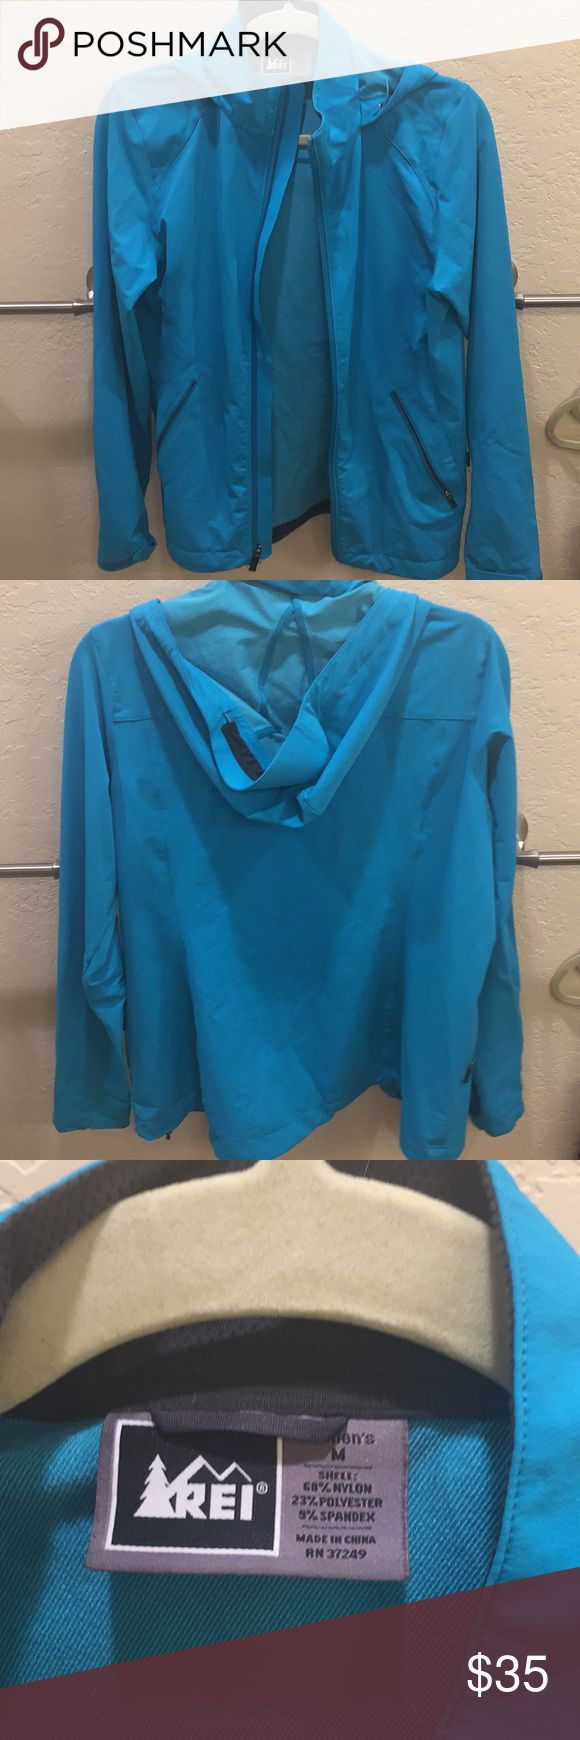 REI water resistant raincoat with hood Teal REI raincoat with hood. Perfect for hiking or every day use. Has been worn but still in good condition. It is water repellent and pretty warm. REI Jackets & Coats Utility Jackets